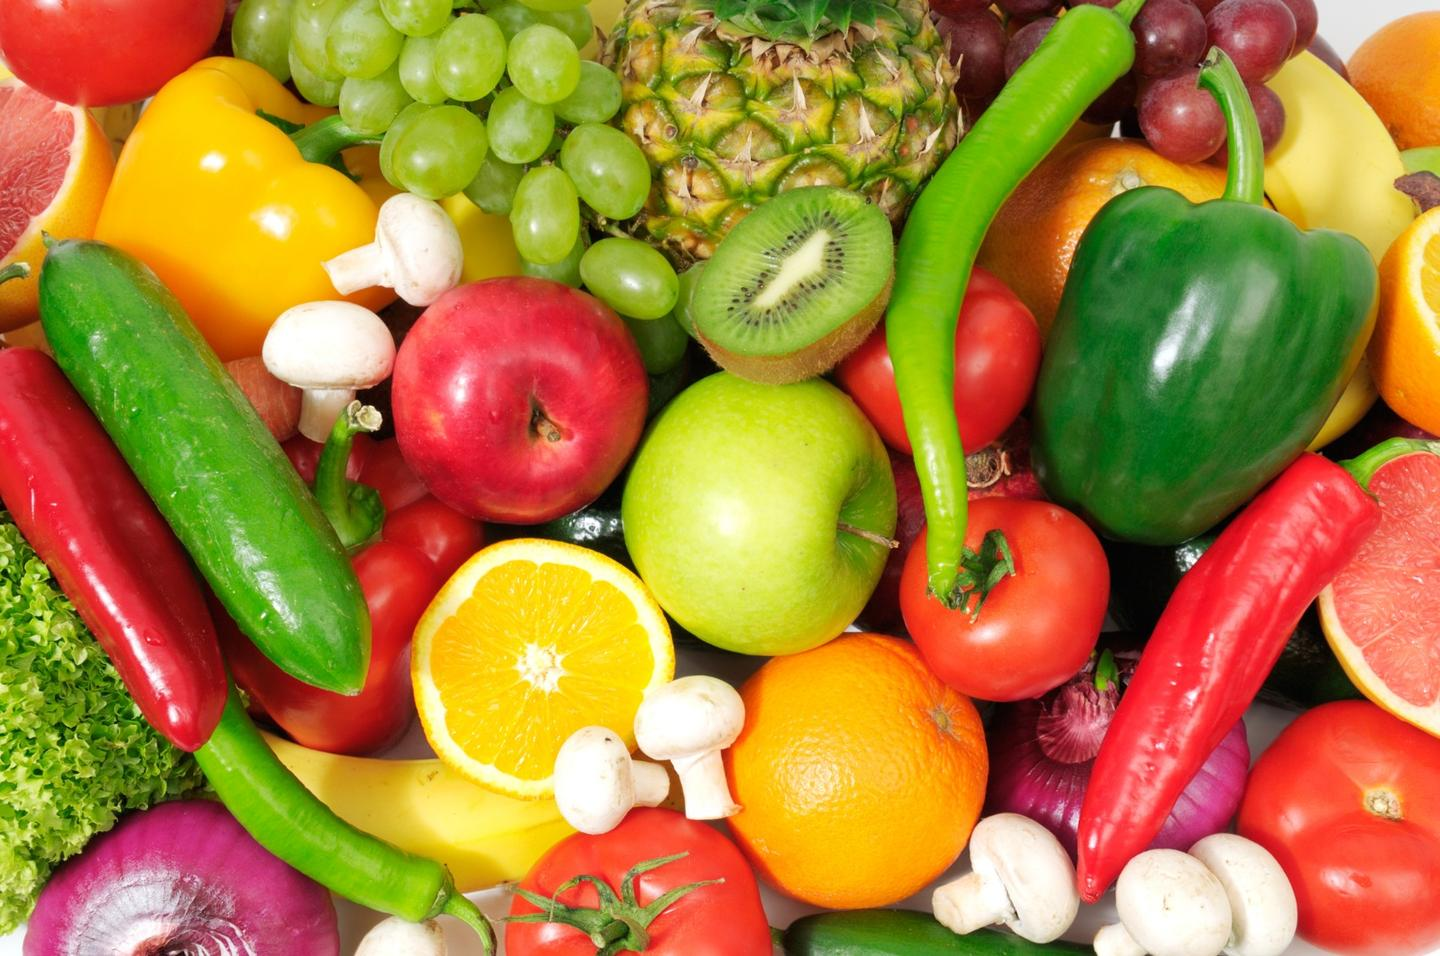 Fisetin, a flavonoid found in many fruits and vegetables. may be an effective anti-aging compound